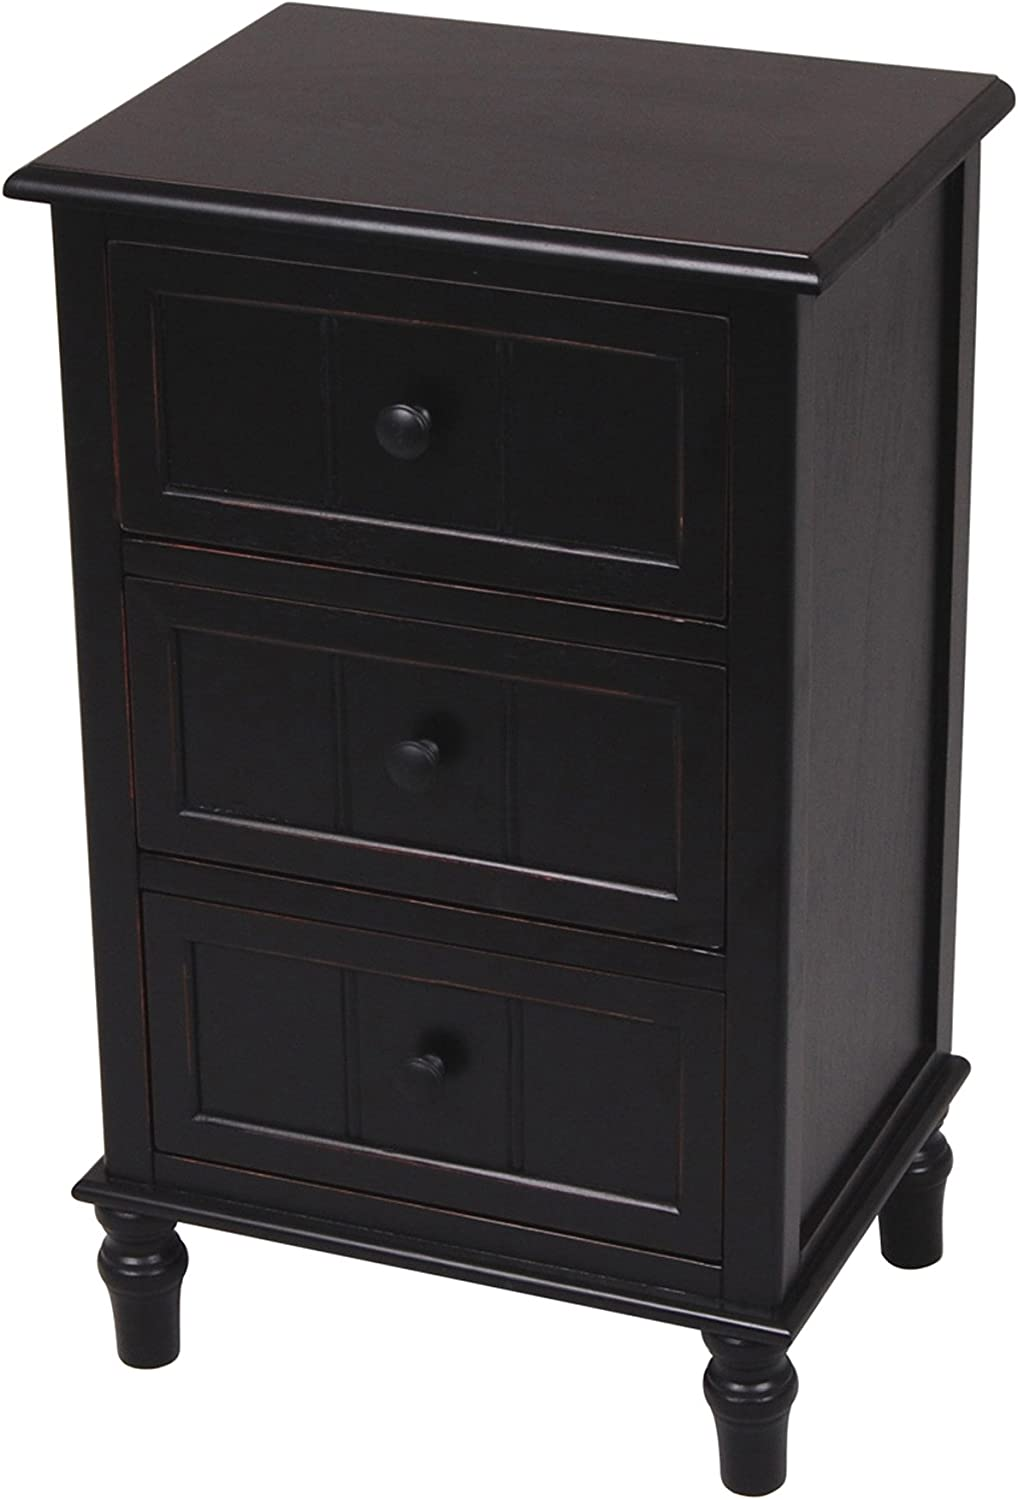 Décor Therapy Accent Table, Eased Edge Black